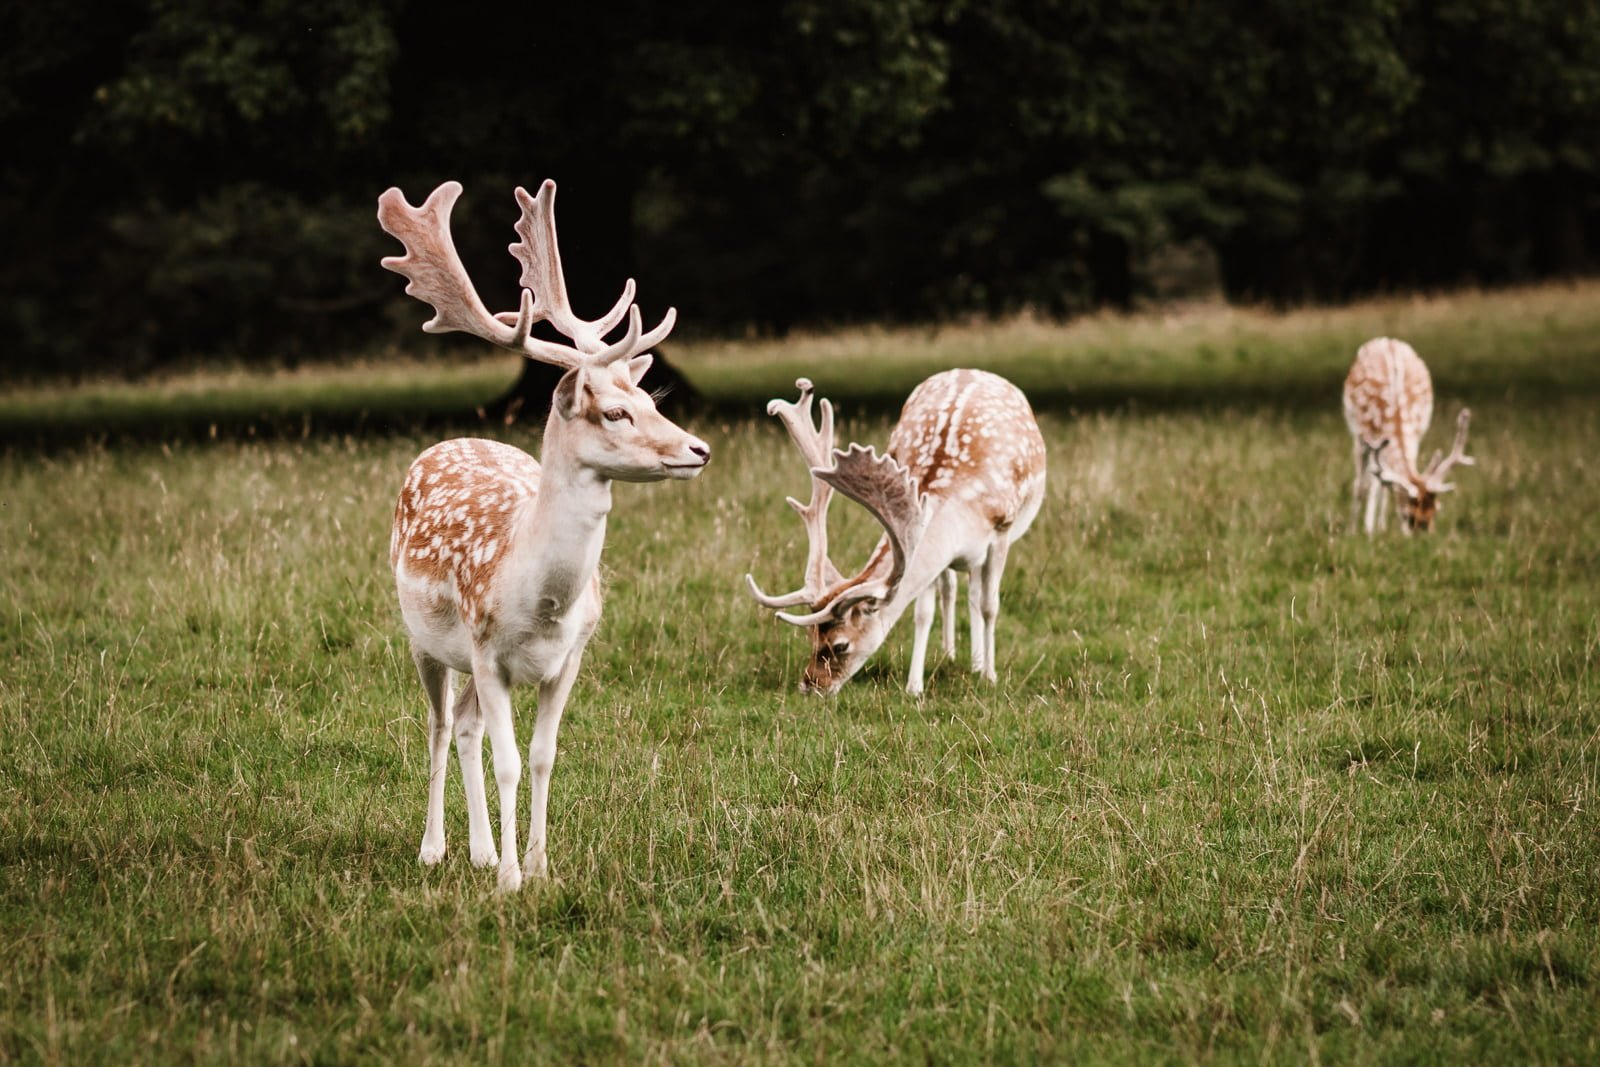 Deer at swinton Park